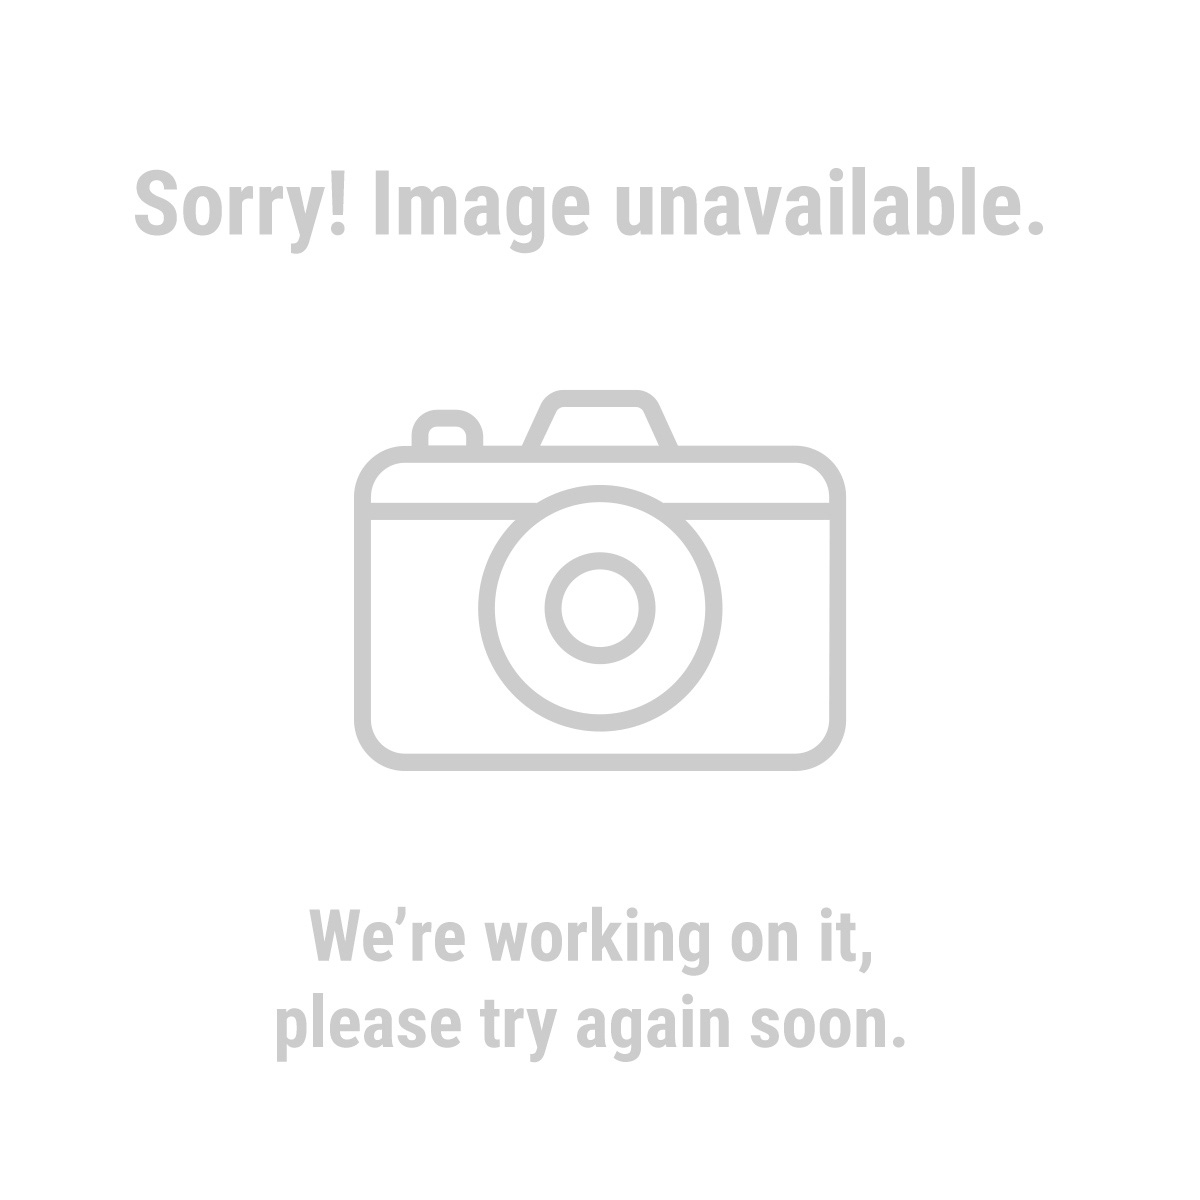 HFT 94635 4 Piece Anti-Fatigue Foam Mat Set